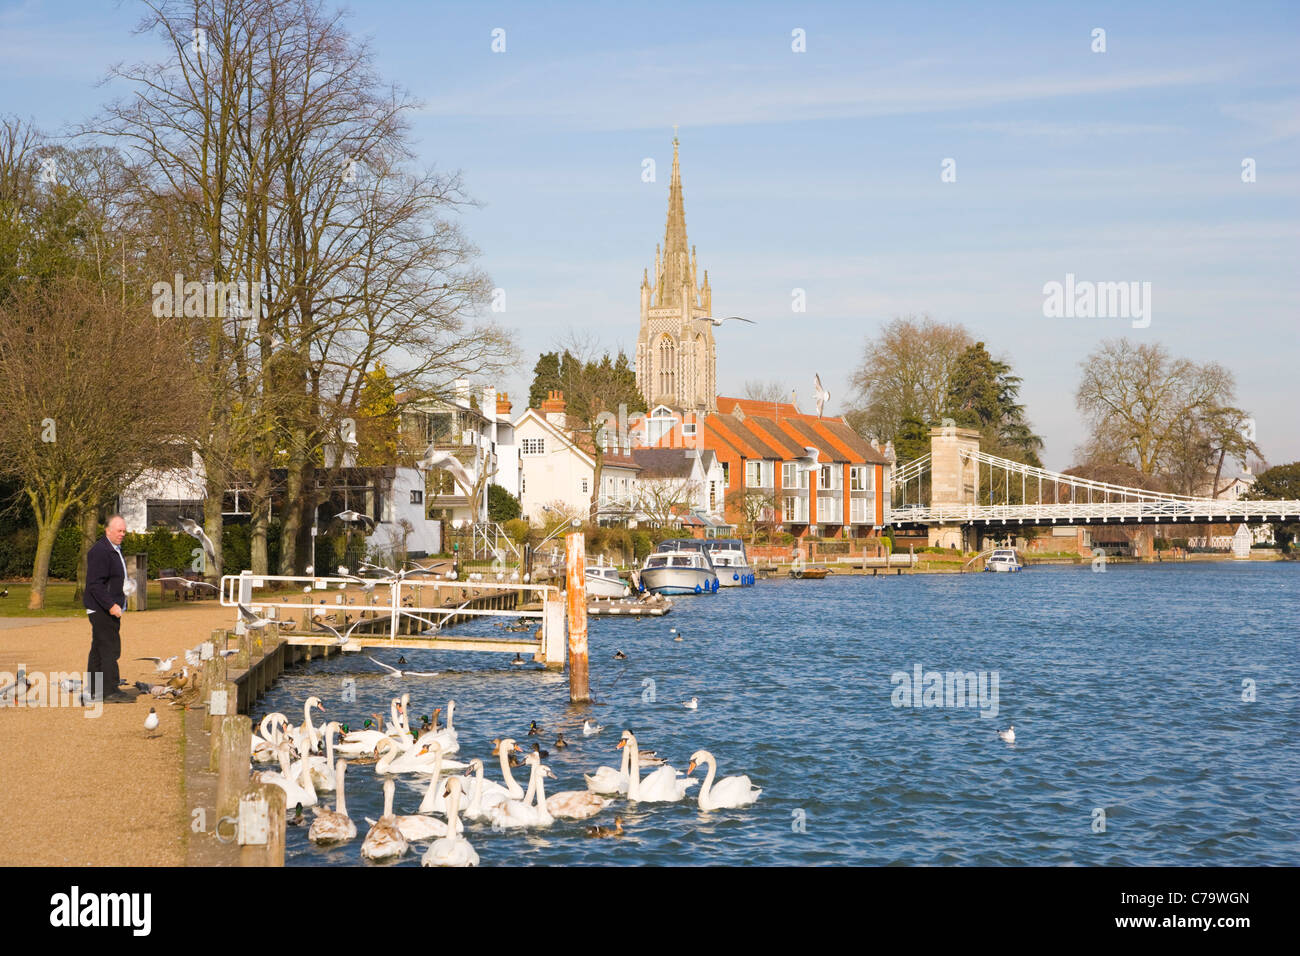 Marlow Suspension Bridge and All Saints Church by Thames river, Marlow, Buckinghamshire, England, UK Stock Photo